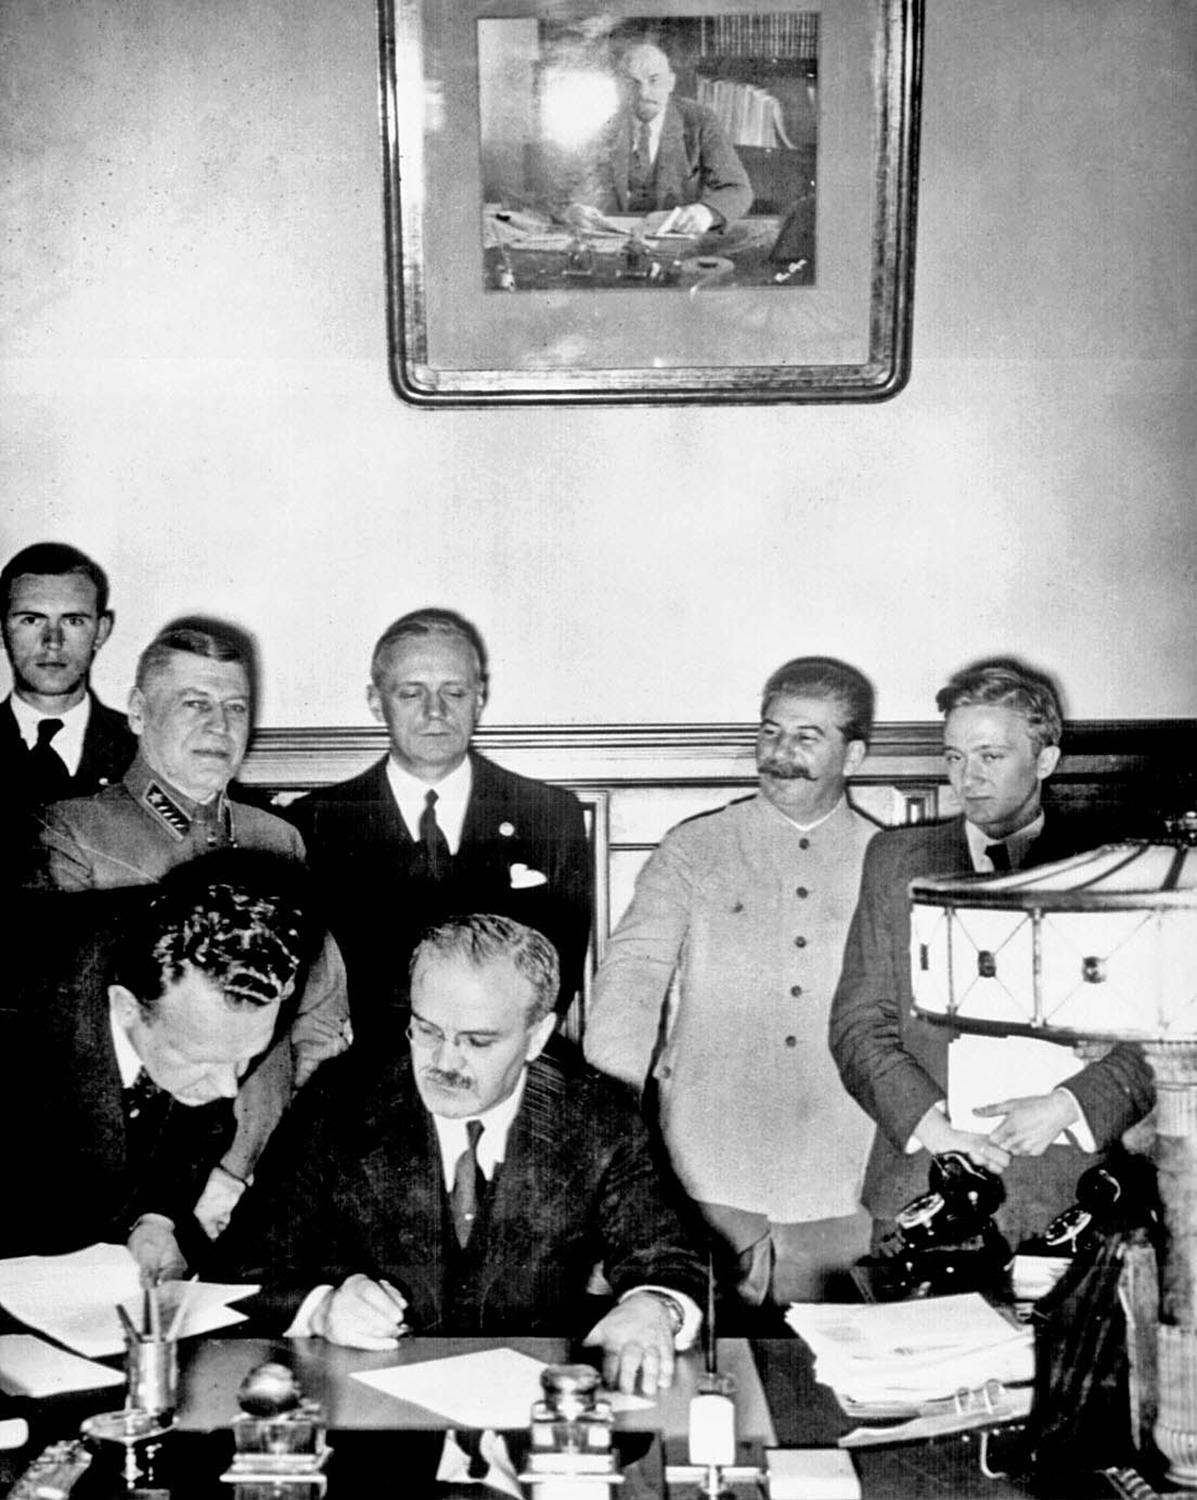 Soviet Foreign Minister Vyacheslav Molotov signs pact in Moscow. August 23, 1939.  Photographer unknown, NARA.